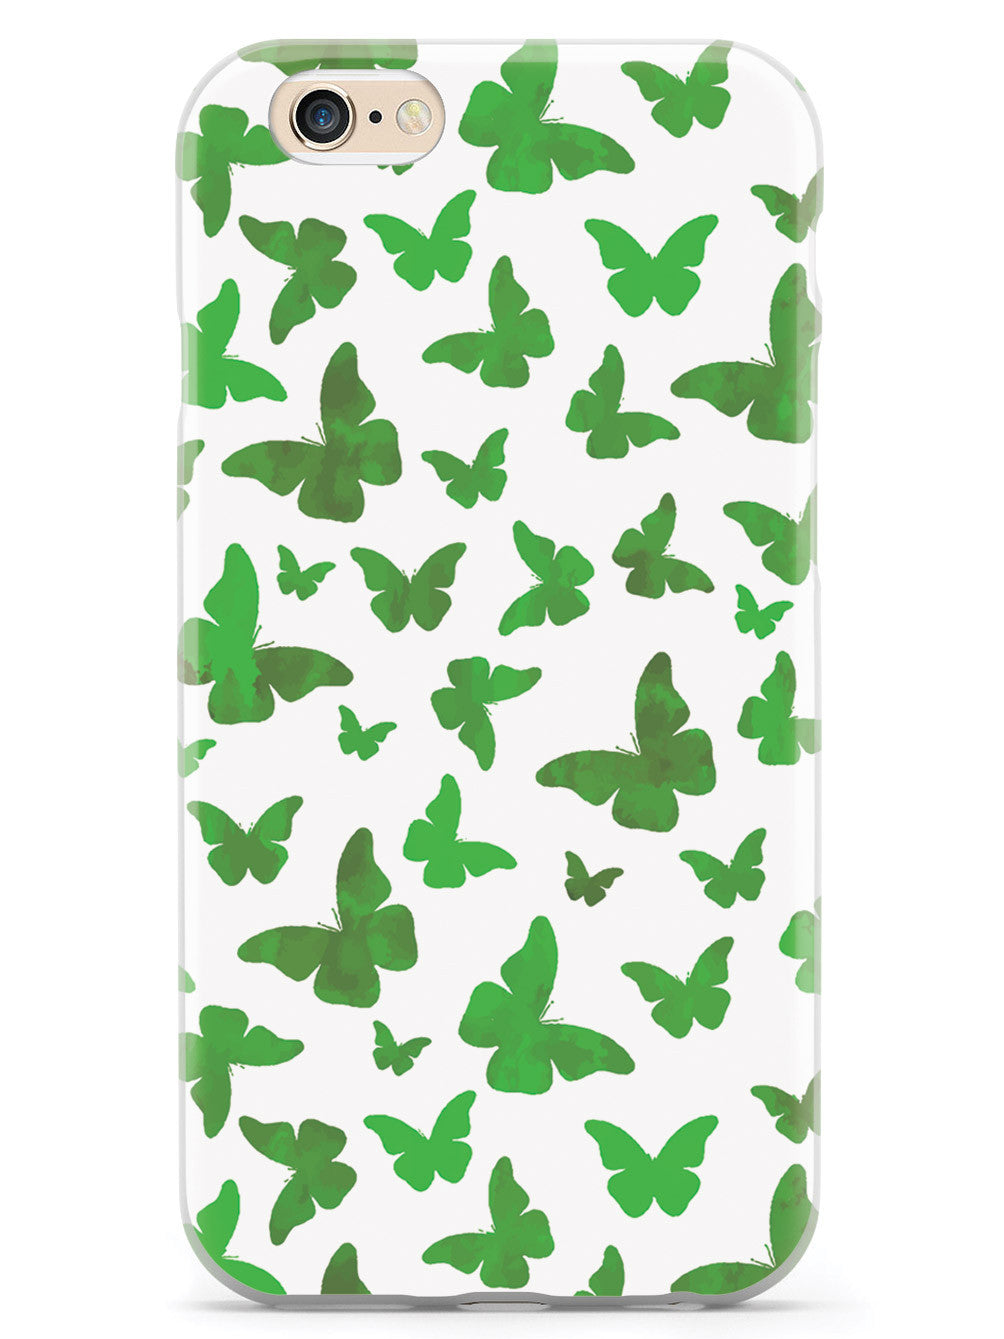 Green Butterflies - White Case